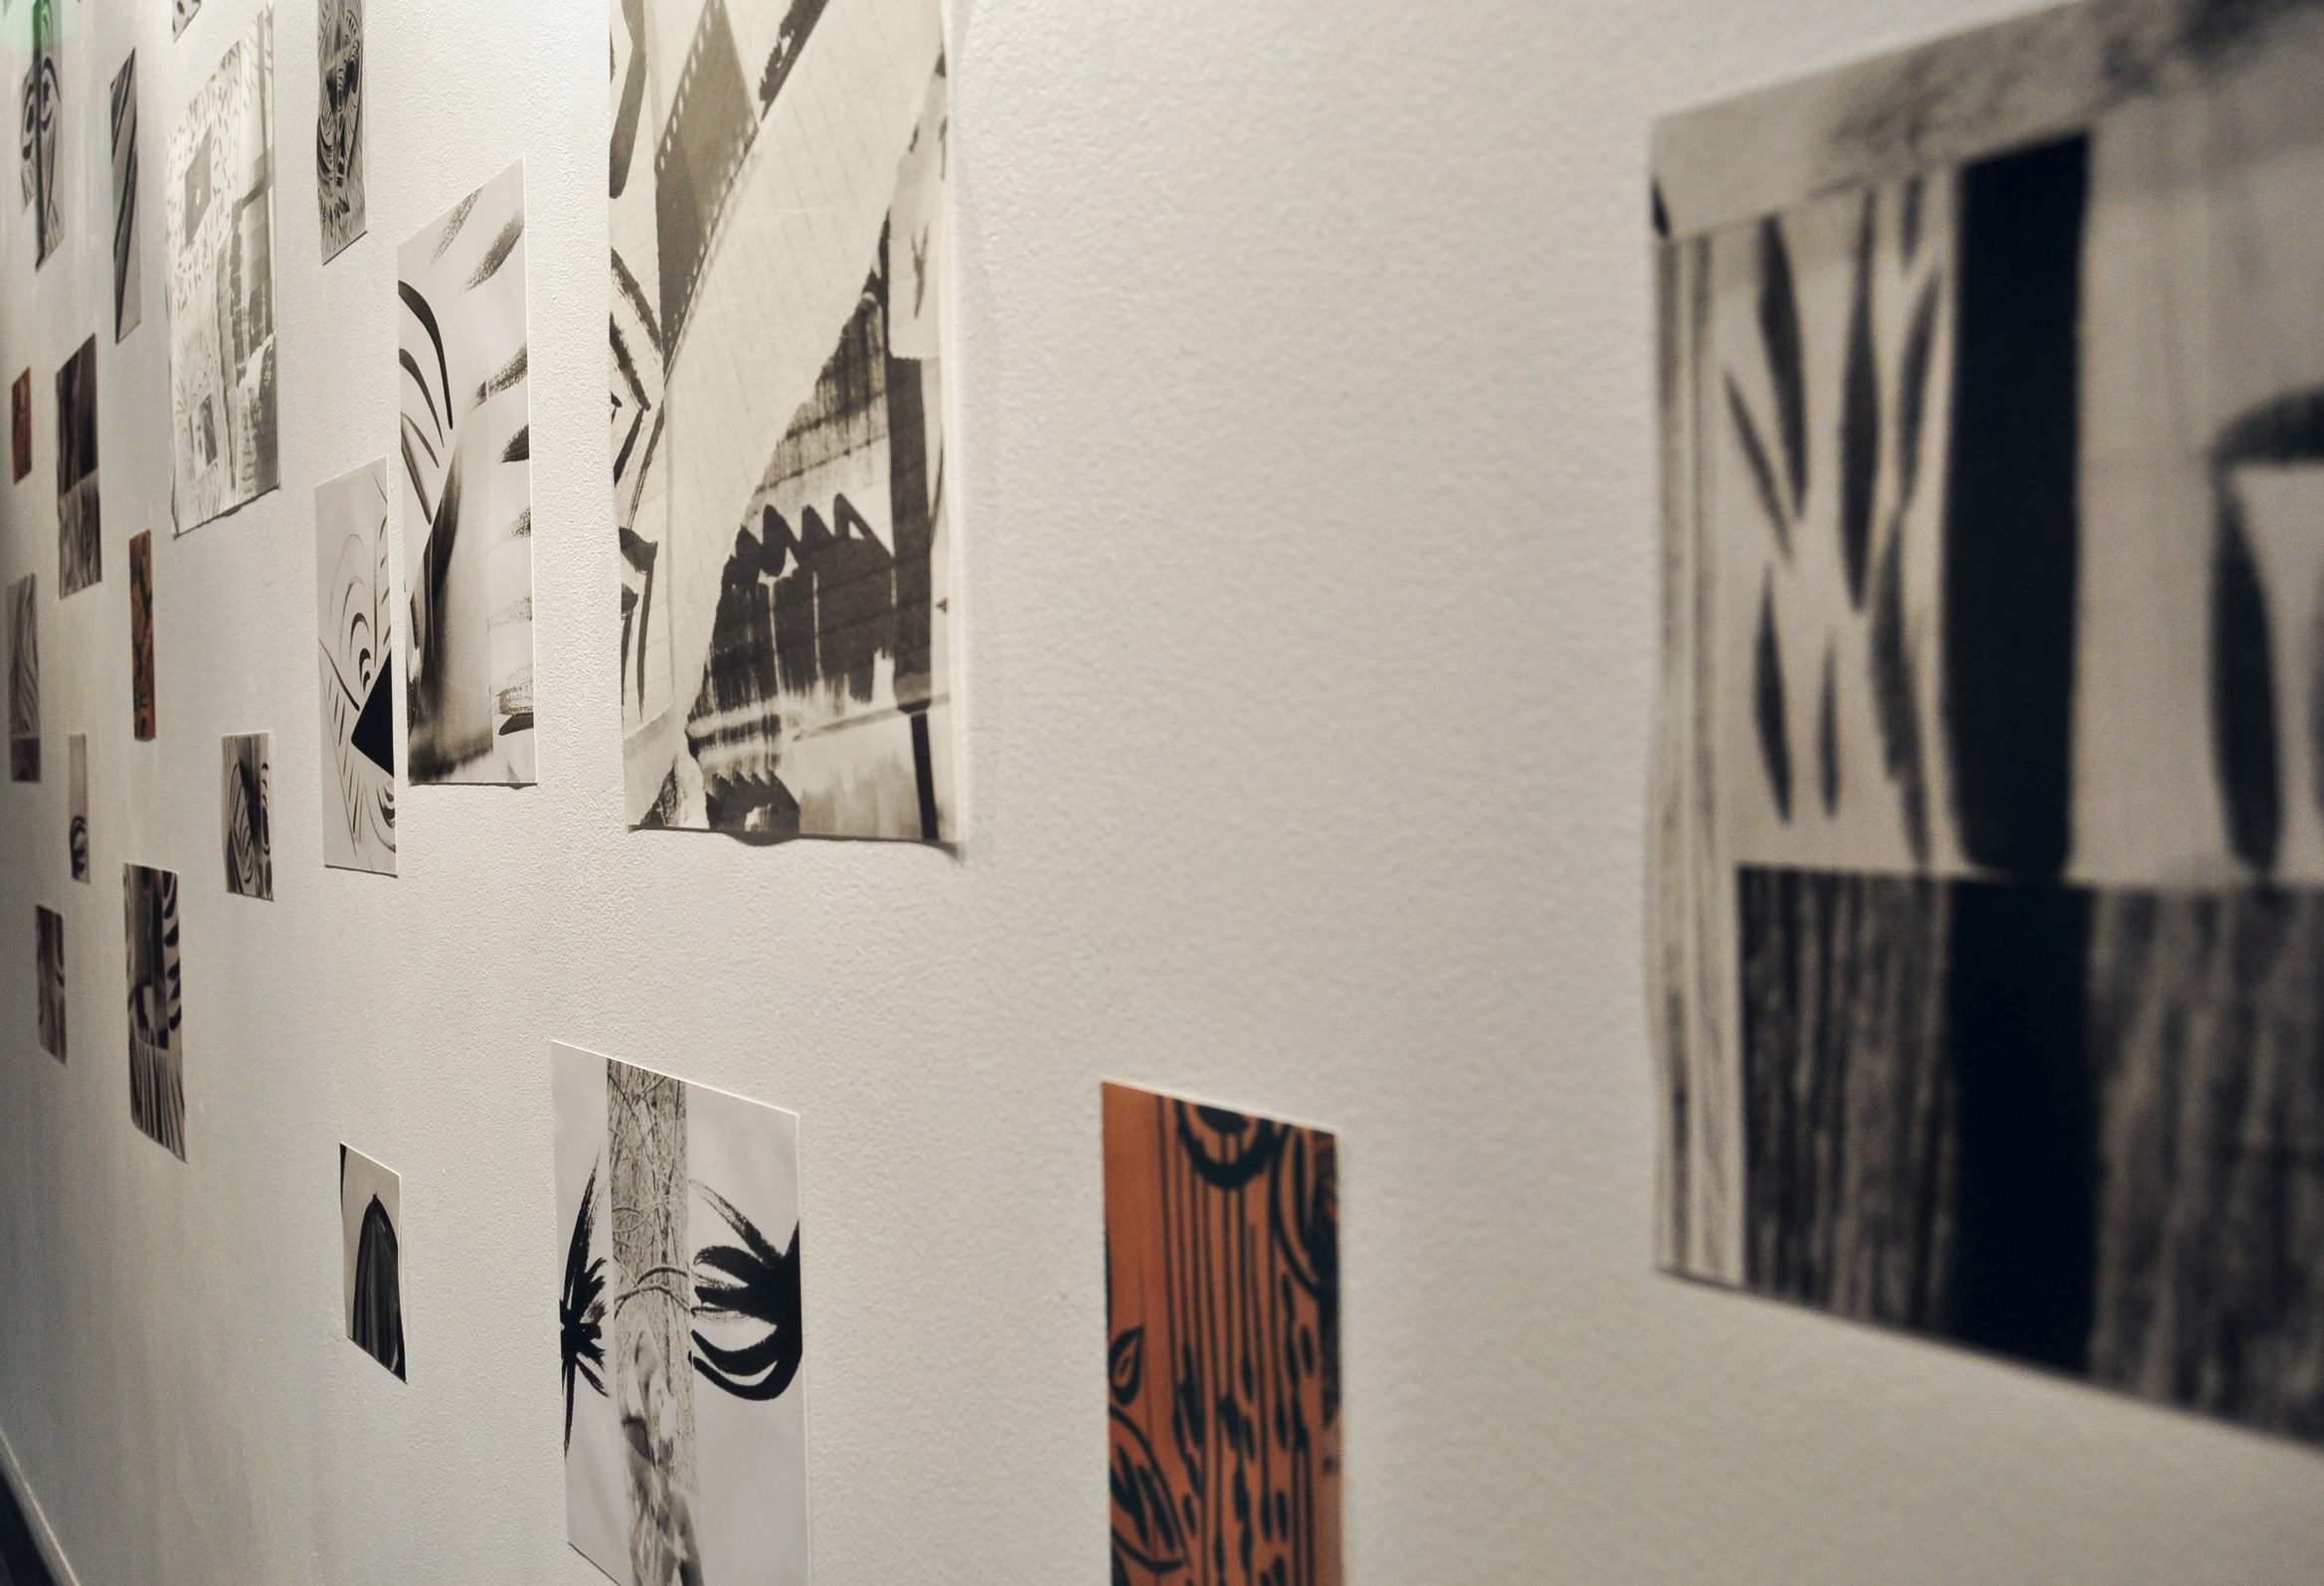 Fragments Re-Imagined (Installation View), Silver gelatin prints, 2014, Mallory Donen, UFV Building C, Room C1401, Abbotsford, BC